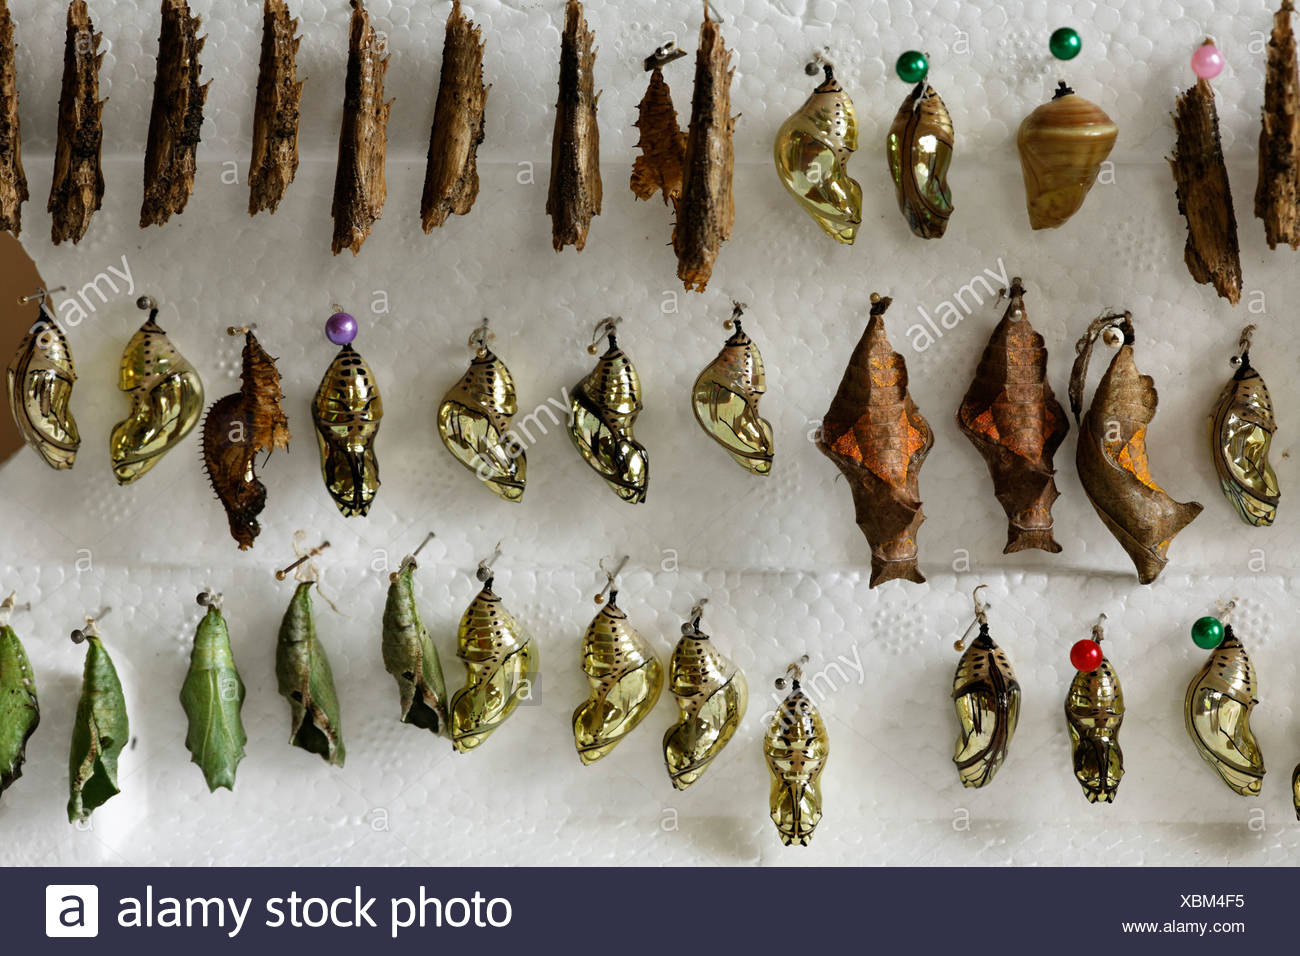 Pupas of butterflies at butterfly farm, Costa Rica - Stock Image